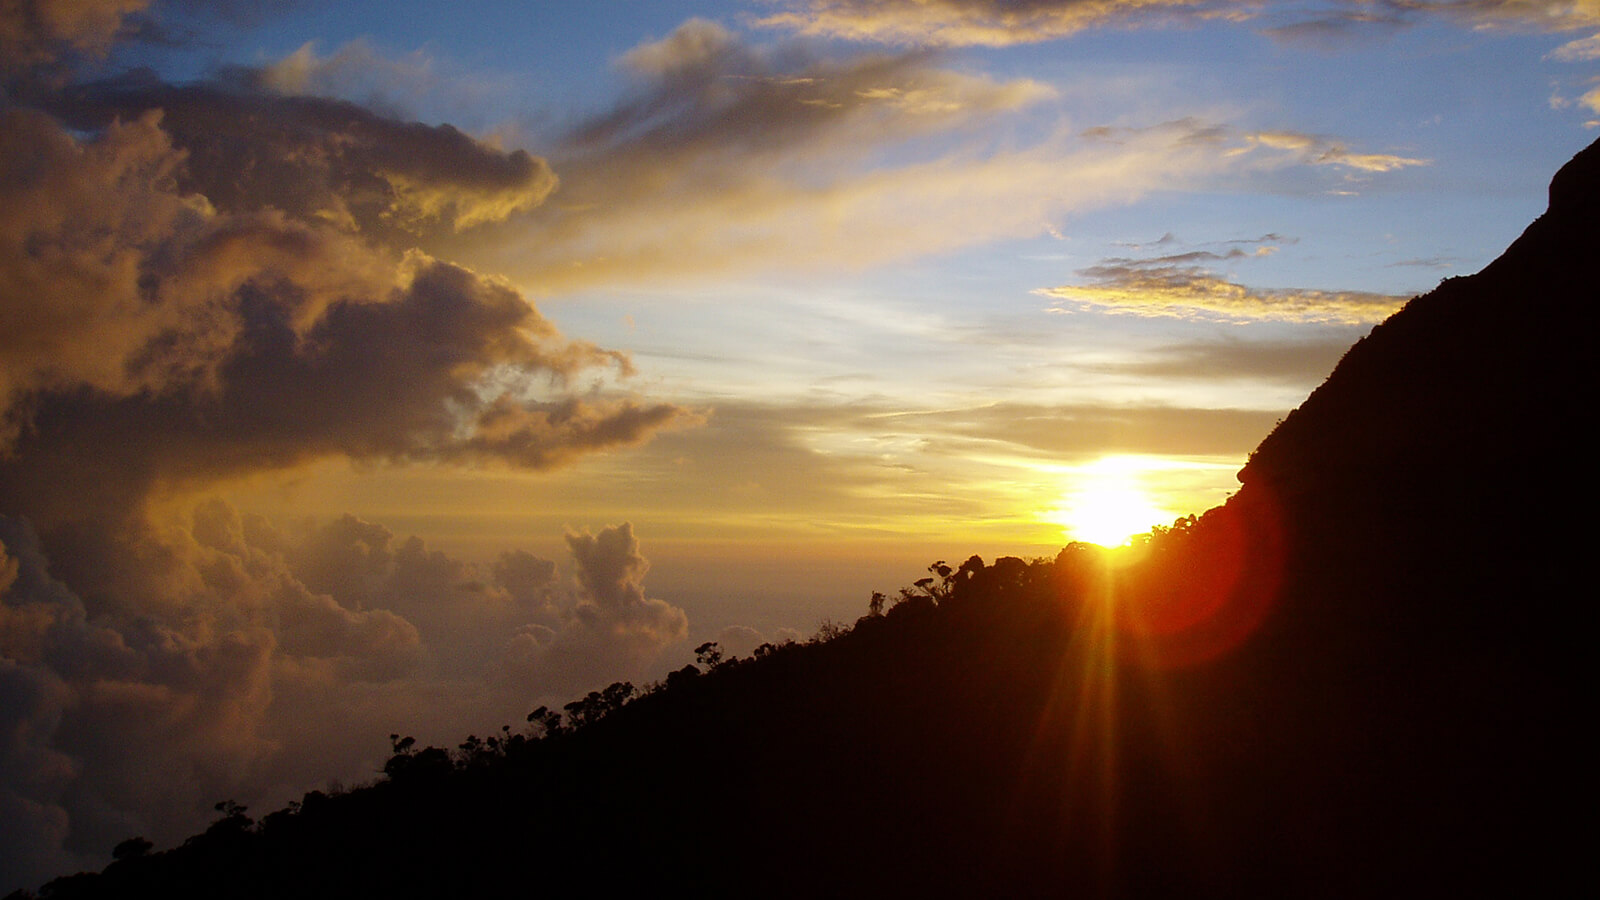 Watching the sunset from Laban Rata, the halfway point when climbing Mount Kinabalu, is a view you will never forget and one of the best hiking destinations of Southeast Asia